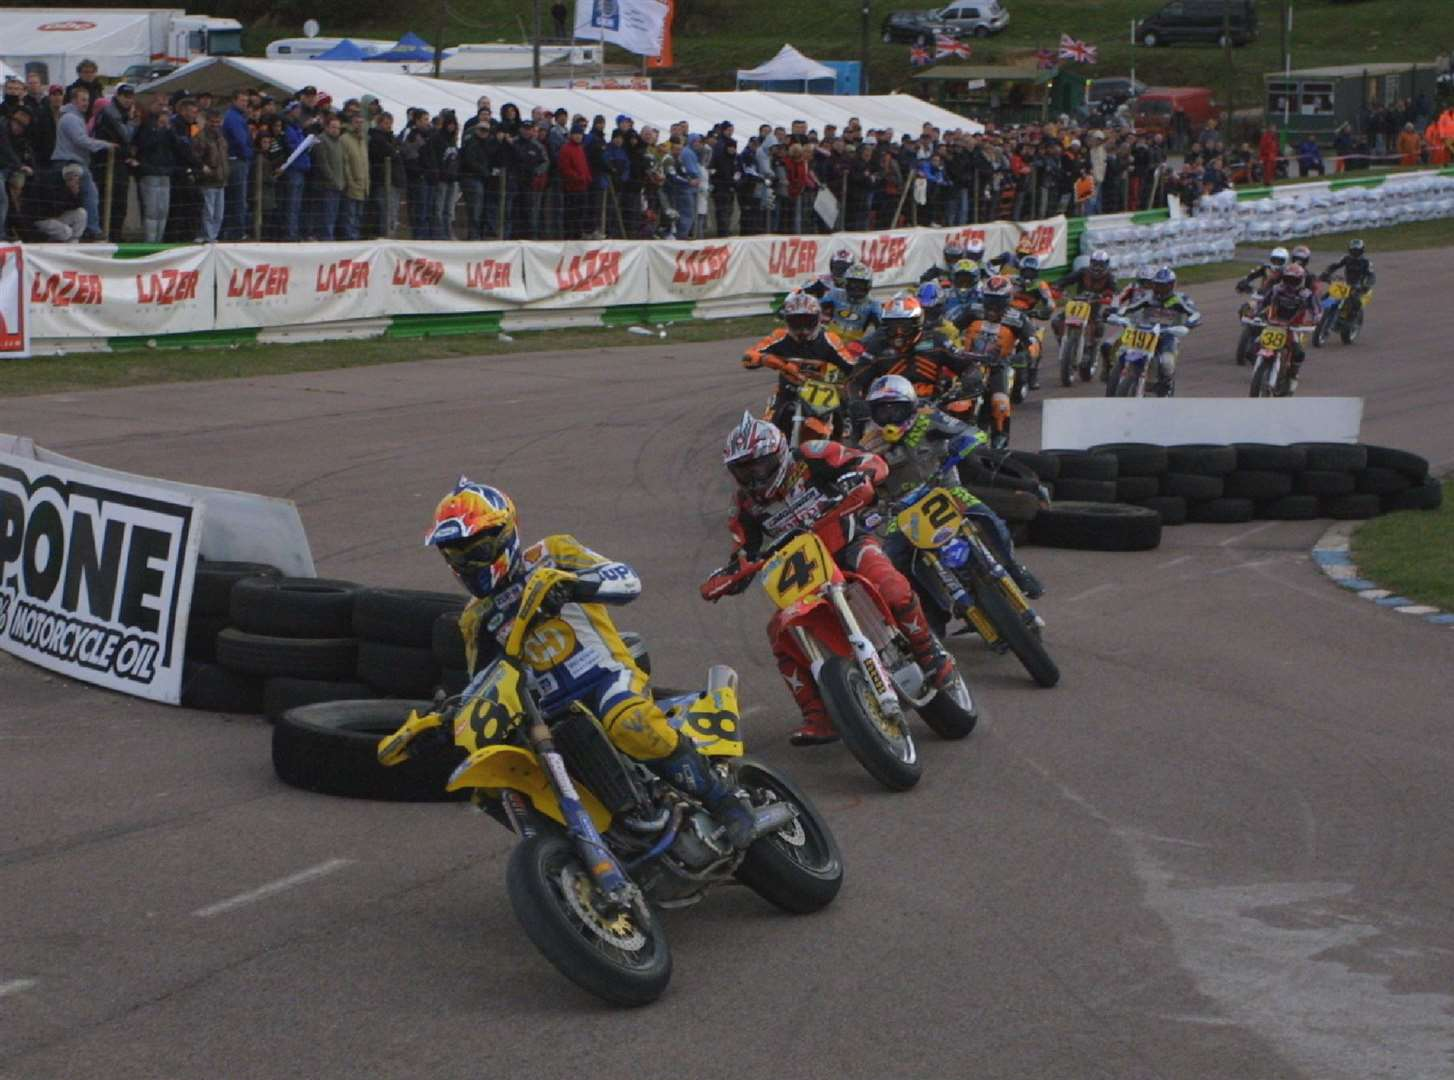 Bernd Hiemer leads the 650 final through the chicane at a Lydden Supermoto meeting in October 2003. Picture: Kerry Dunlop